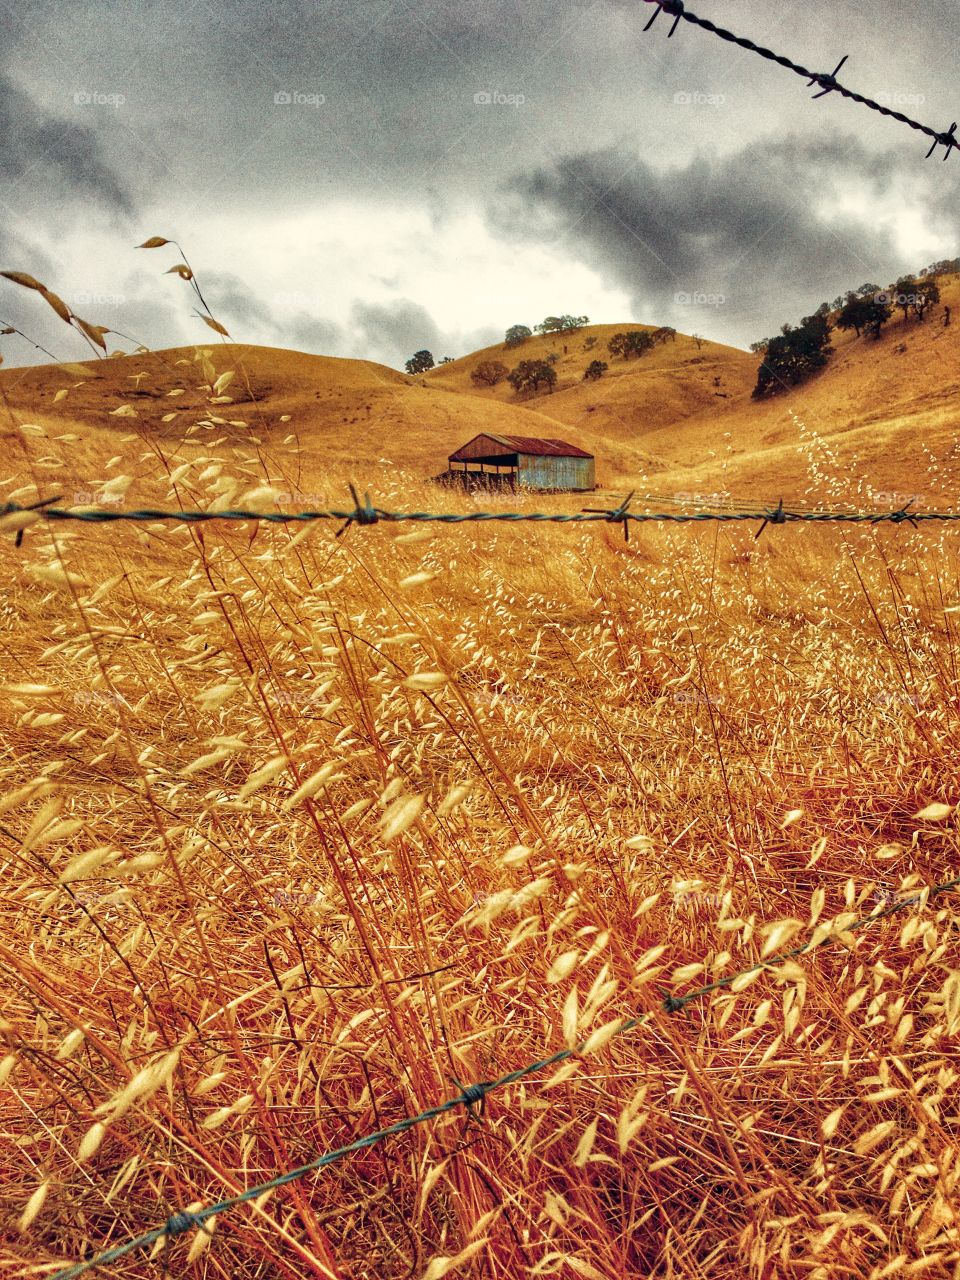 Country building on golden hills with golden grasses of California.